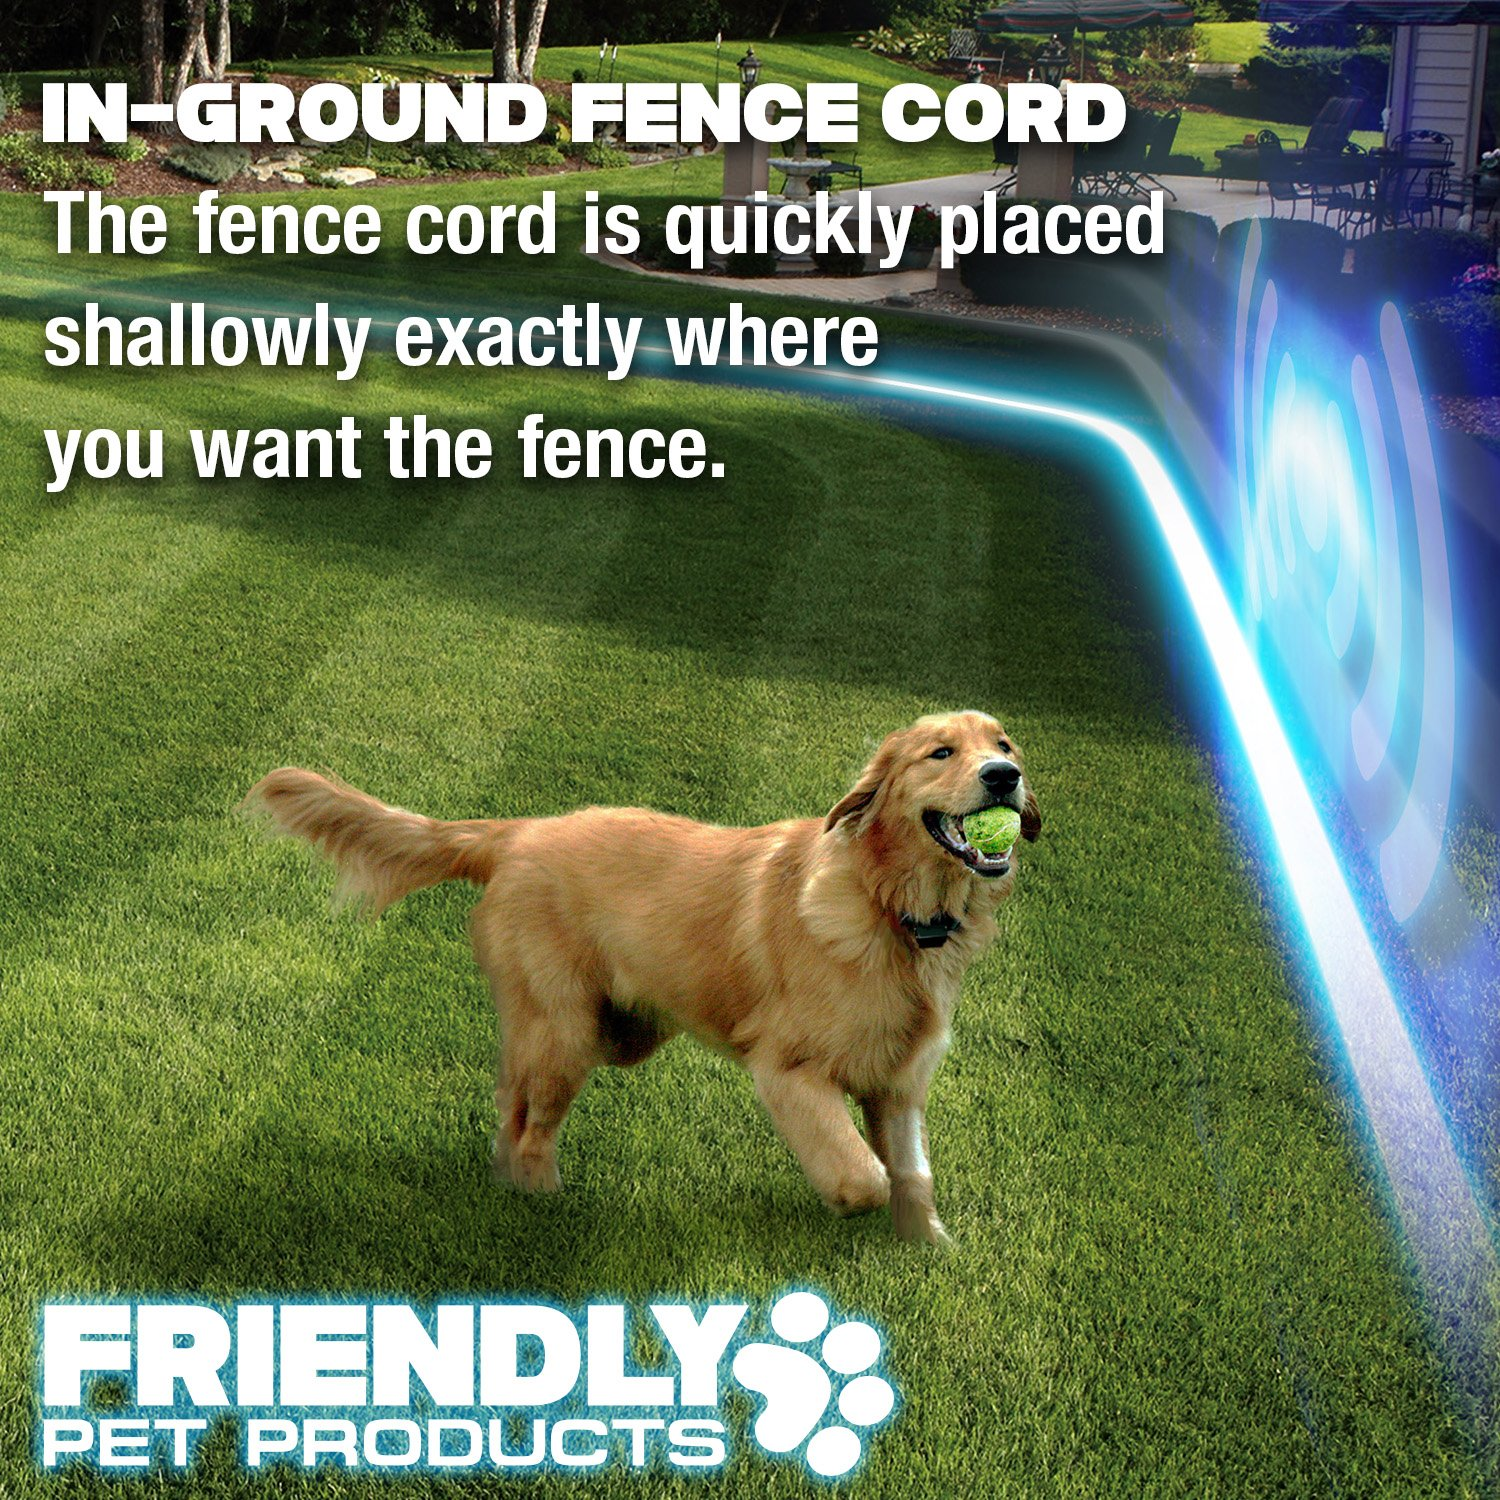 pet fence yard staples. Amazoncom Friendly Pet Products Wireless Dog Fence Outdoor W Radio U0026 InGround Cord Electric Wifi Transmitter Platinum Edition Yard Staples